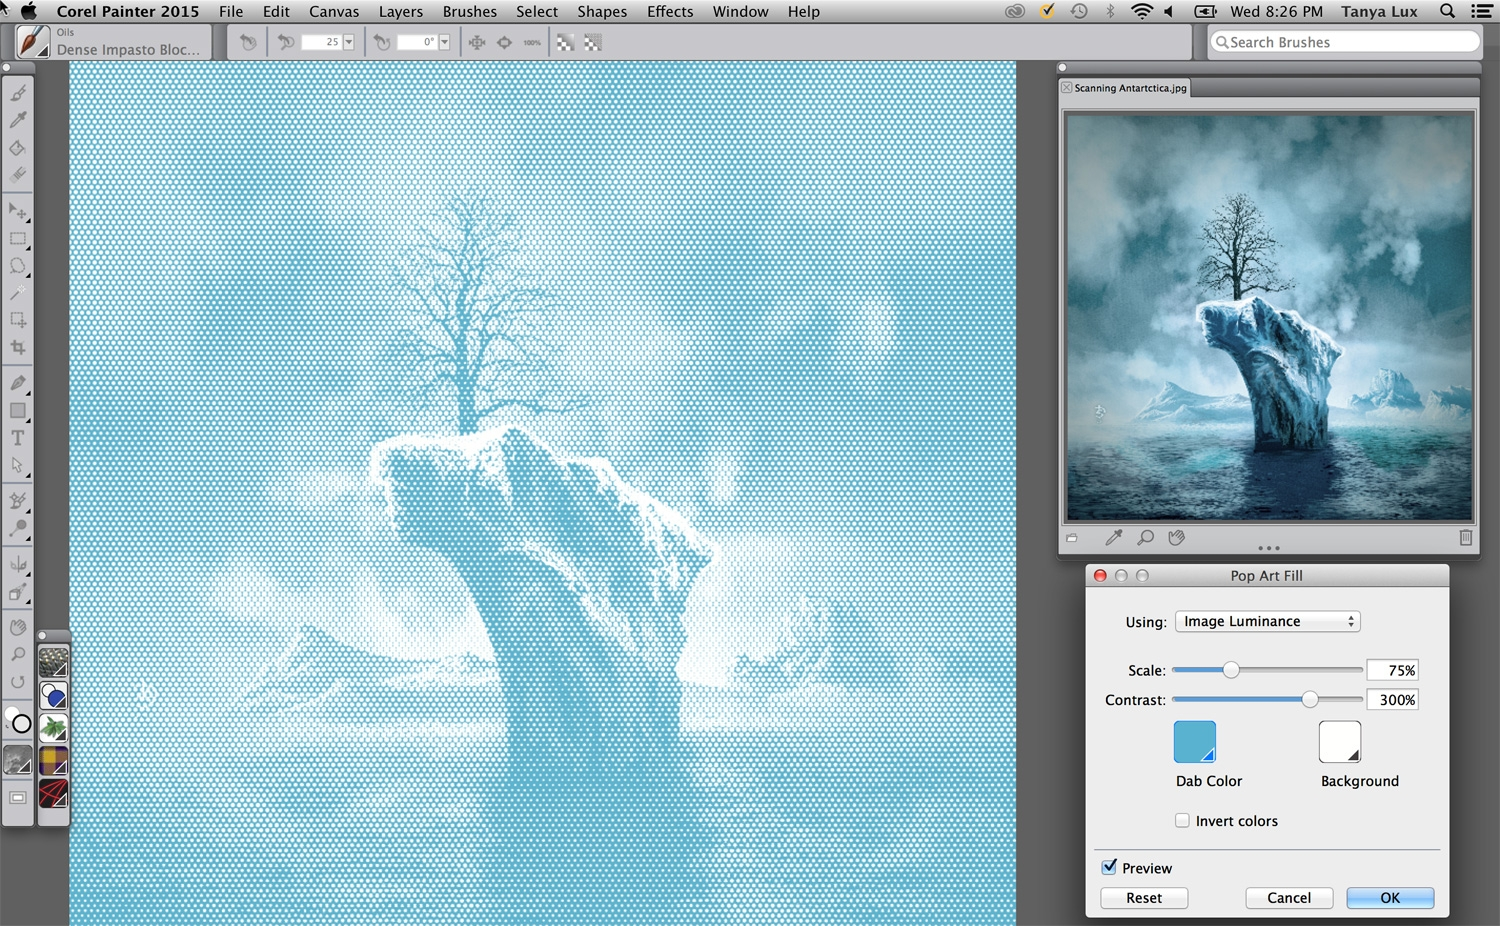 Corel painter 2015 digital painting software released with Digital art painting software